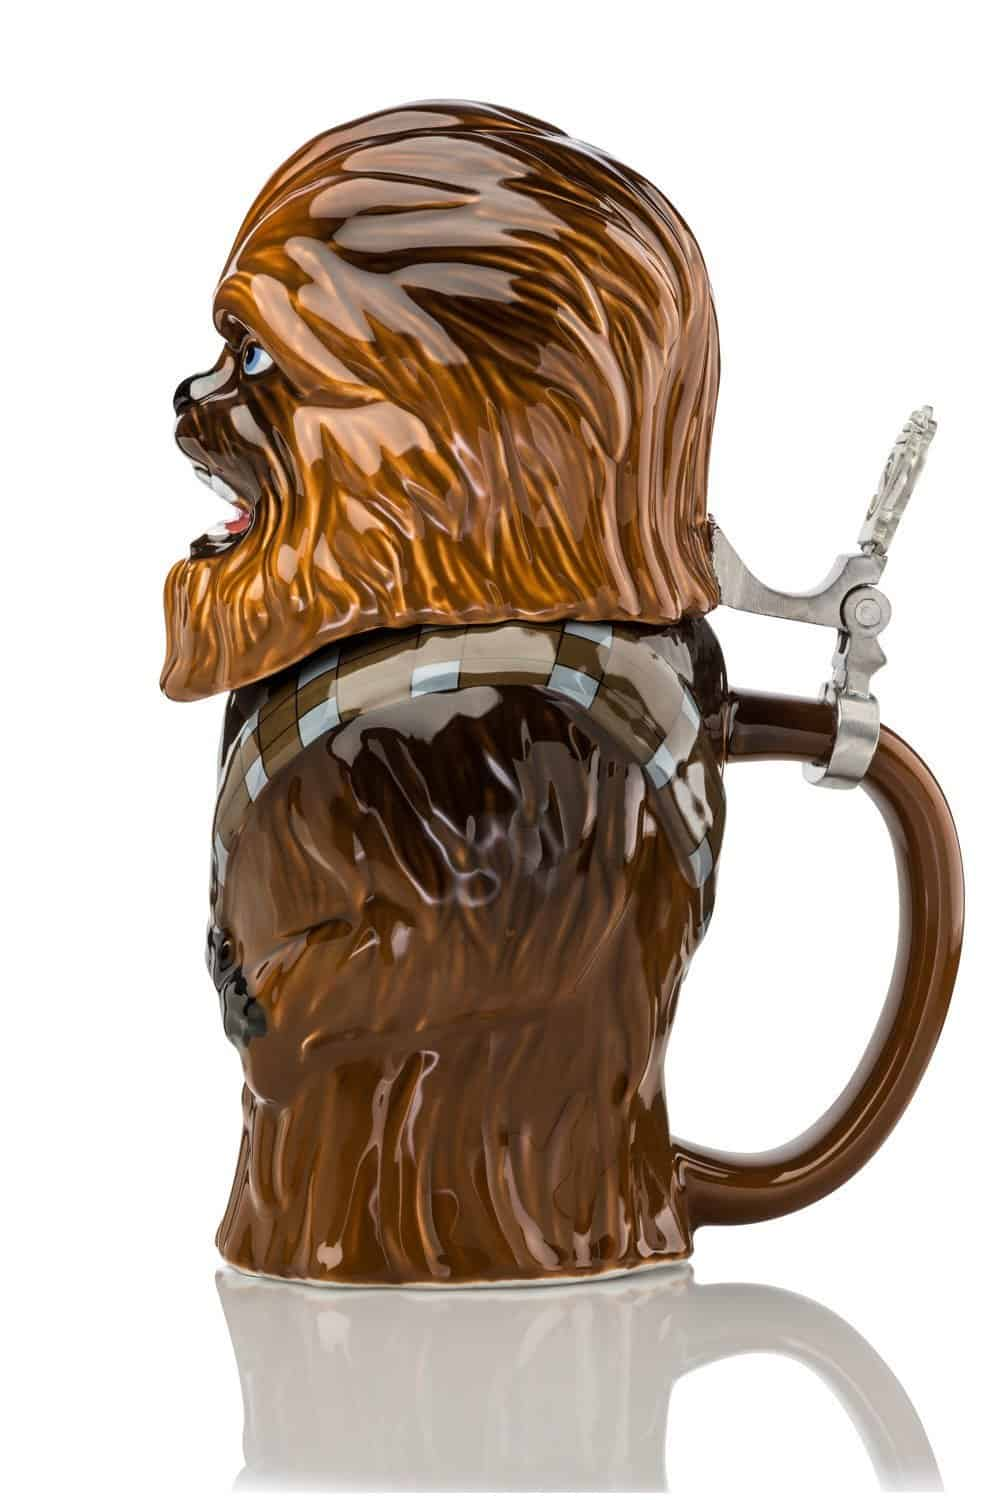 Star Wars Chewbacca Stein Cute Geek Gift